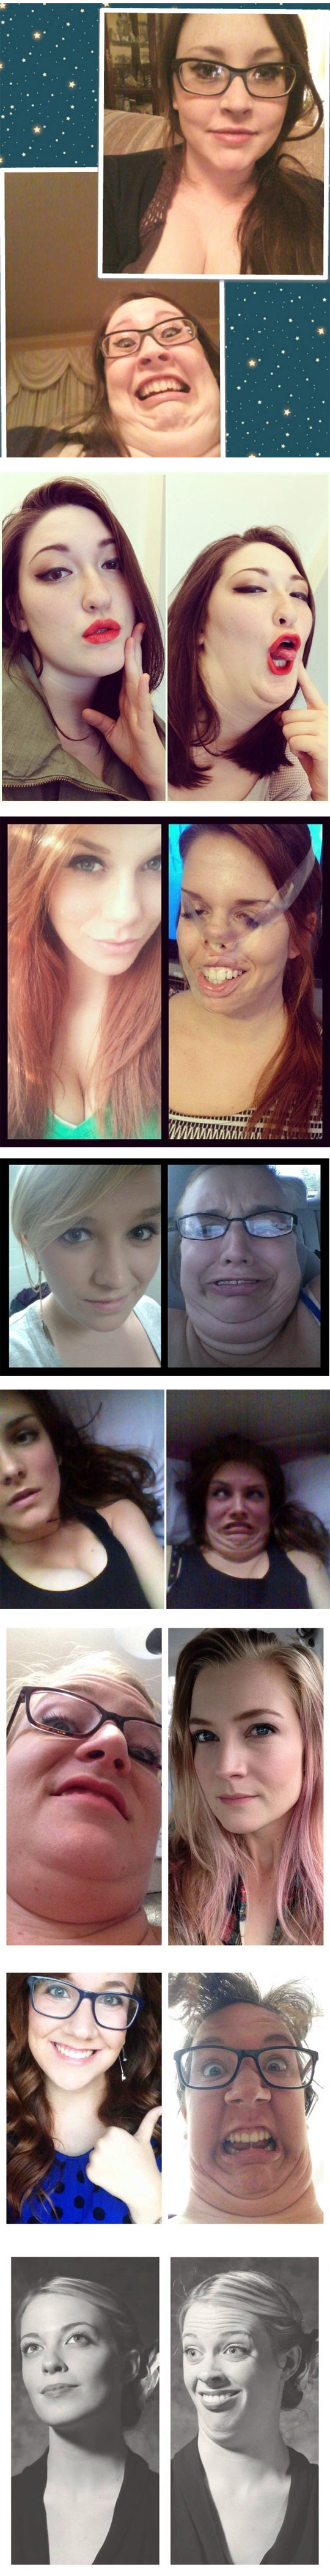 funny-beautiful-women-ugly-faces-weird